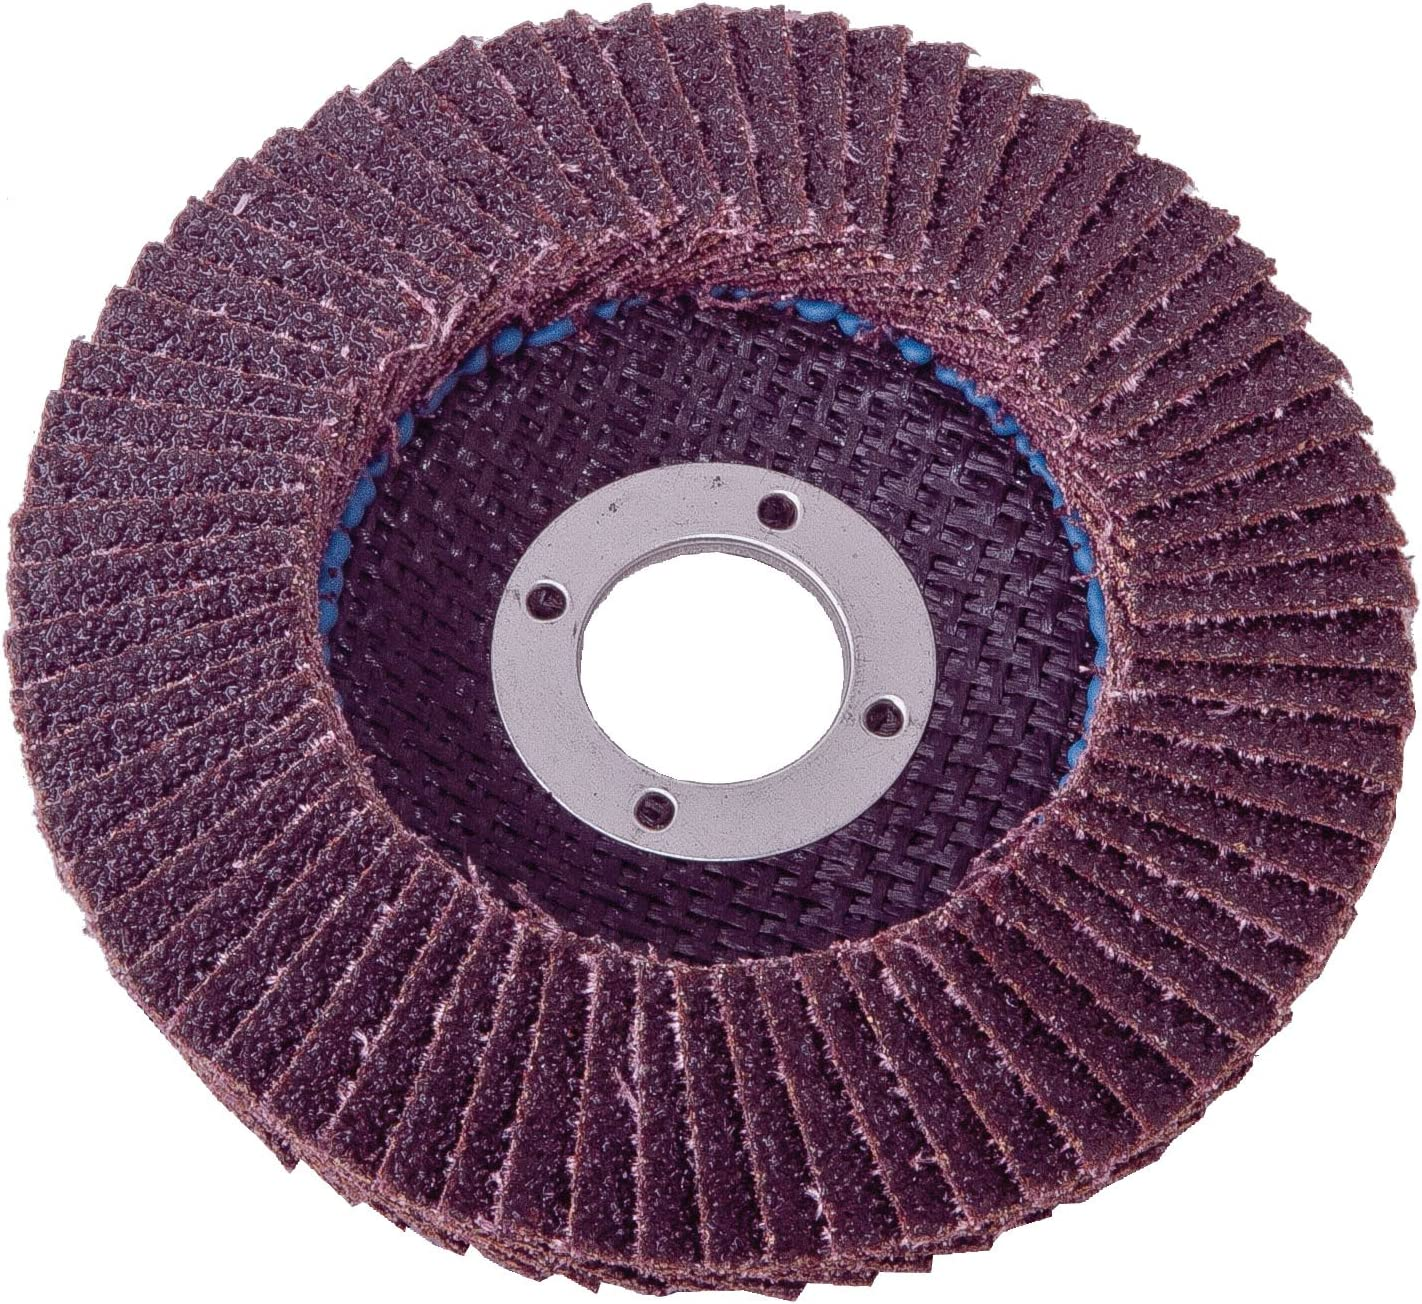 Type 29 Grit-120 Shark 45843 4.5-Inch by 5//8-11NC Zirconia Beveled Flap Disc